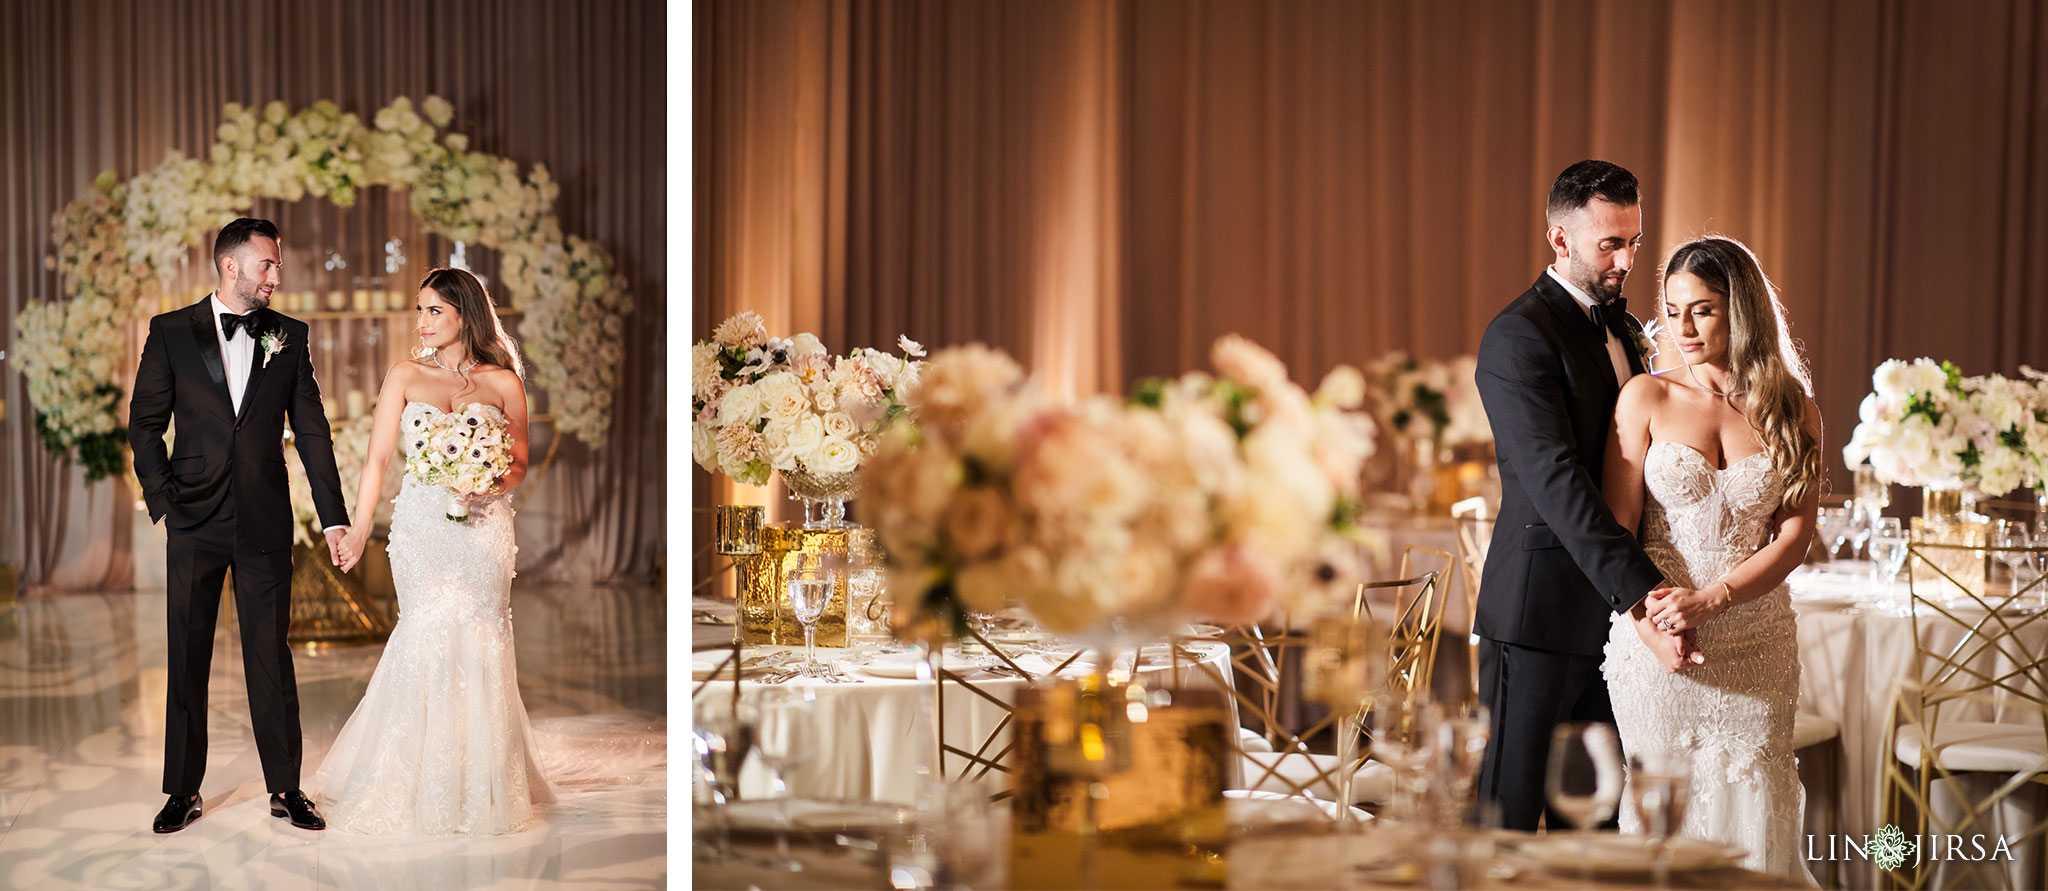 41 montage beverly hills persian wedding photography